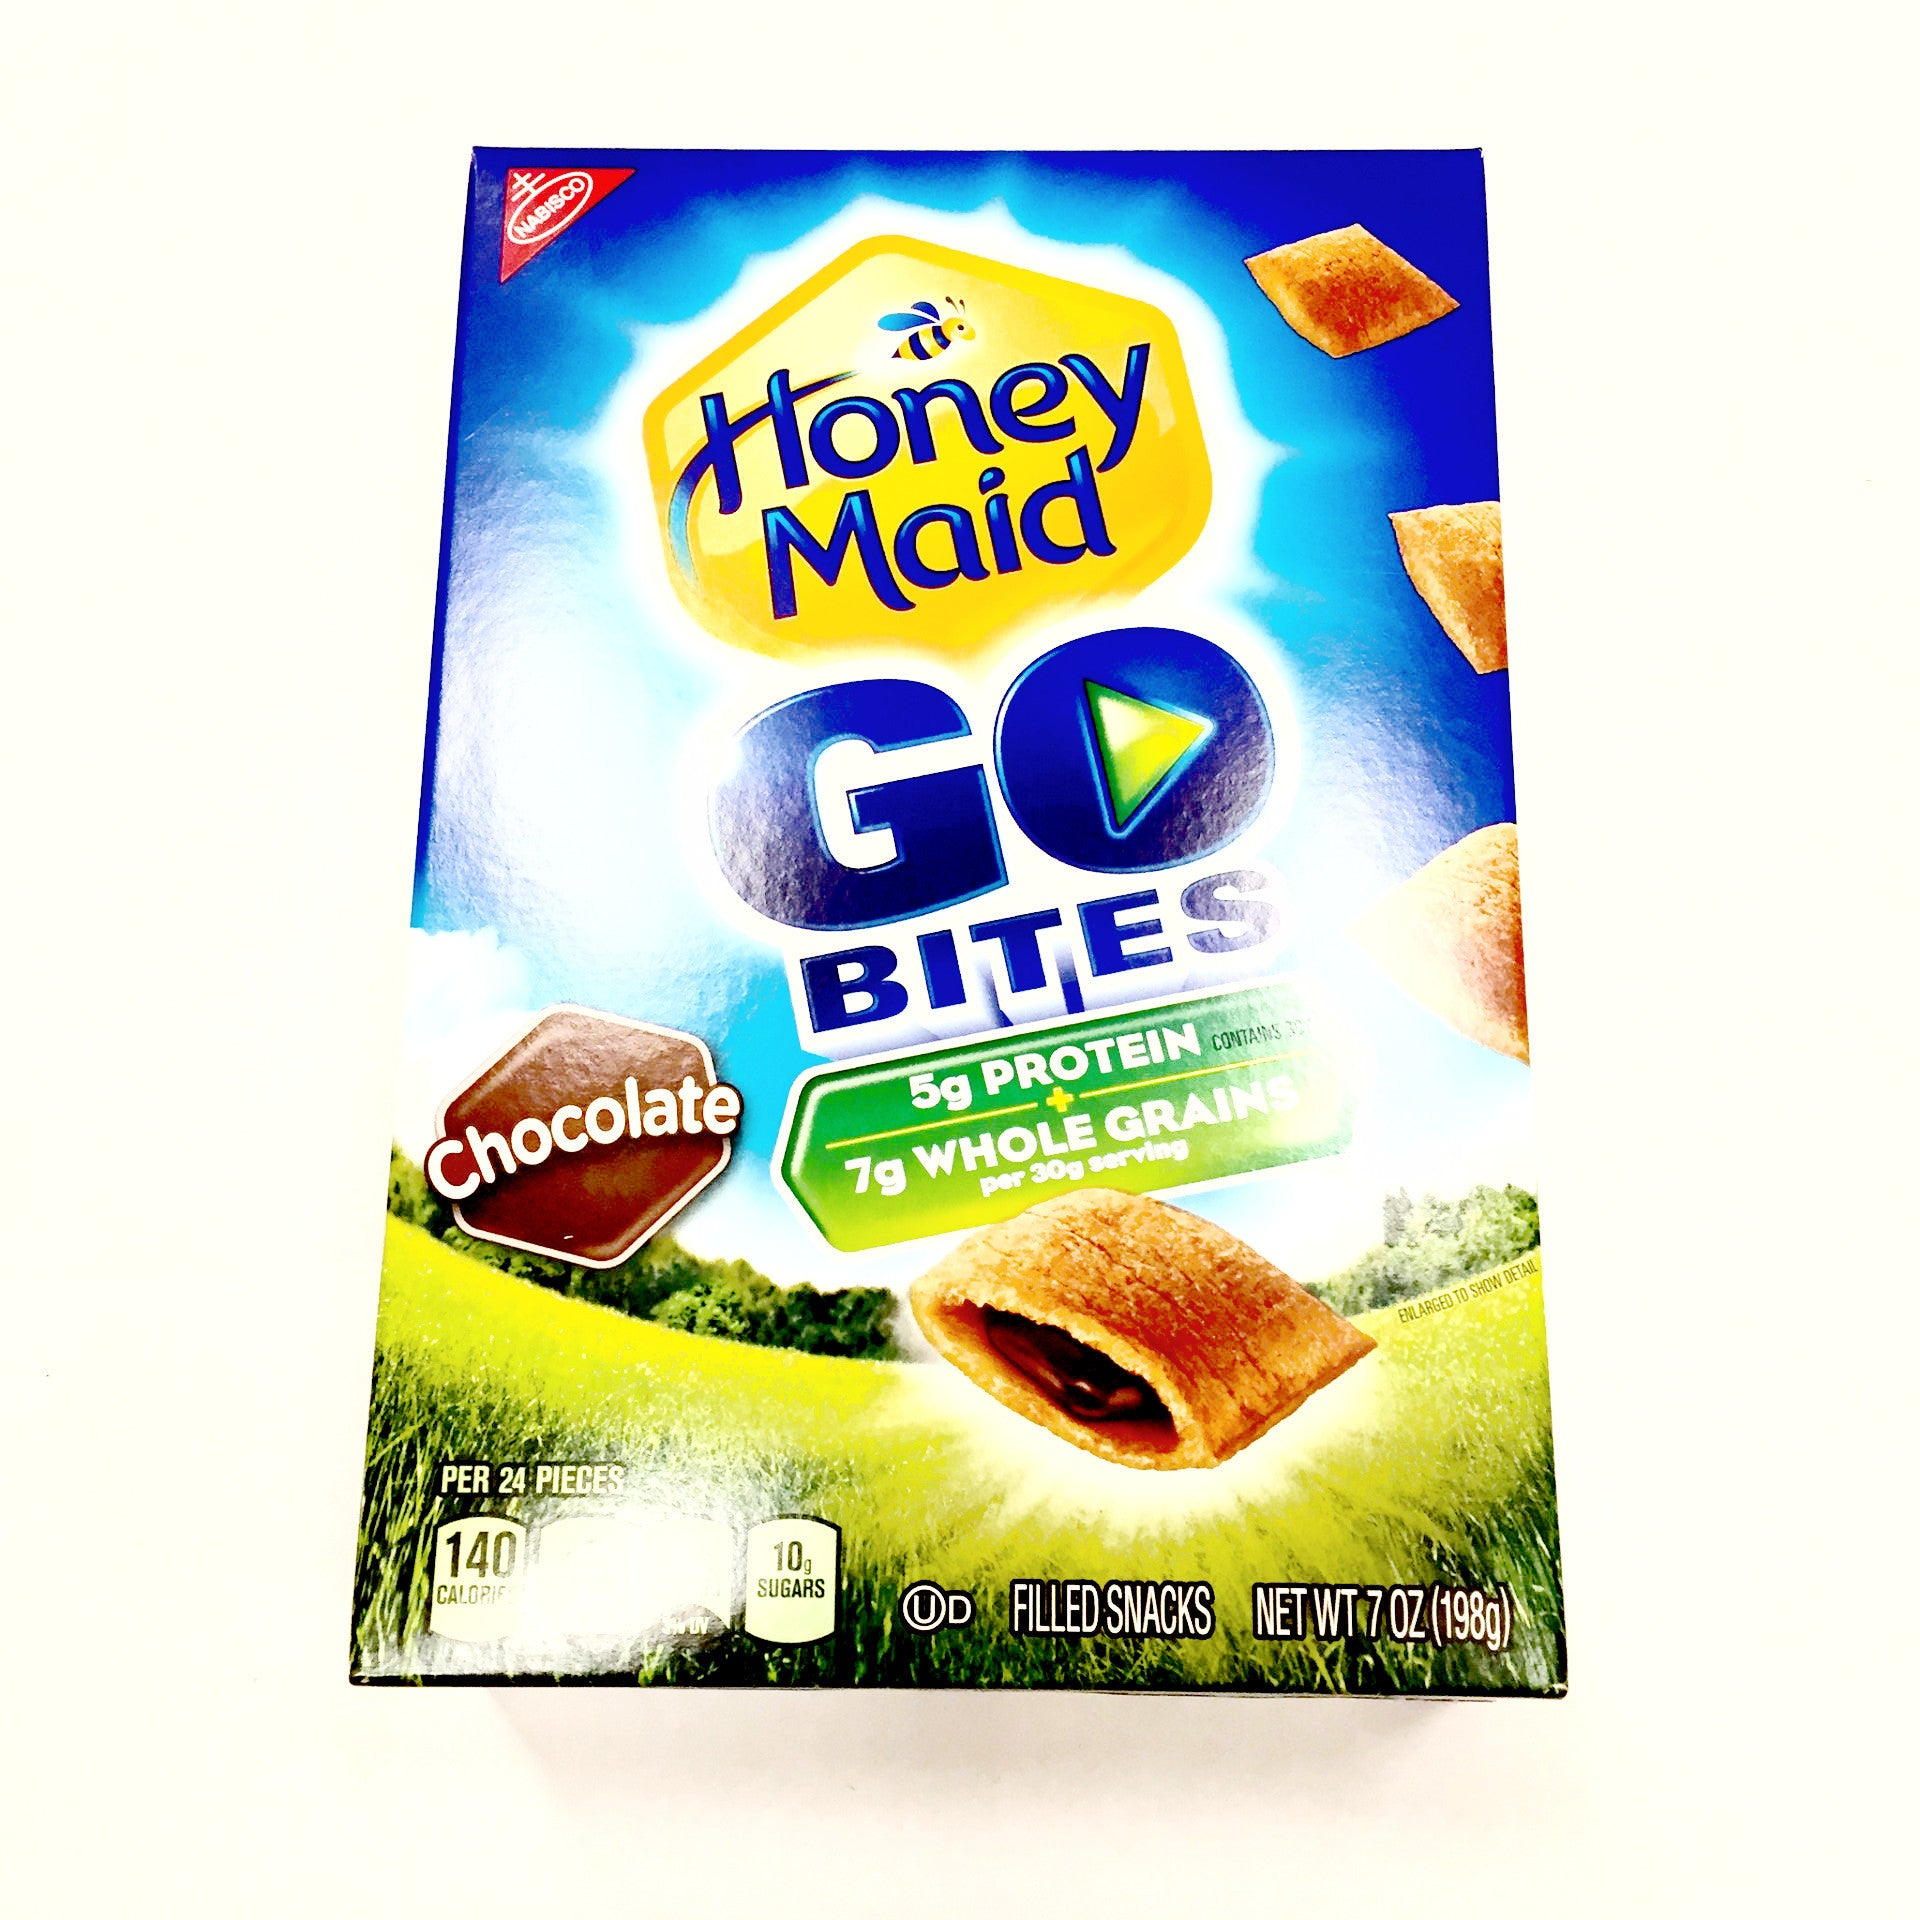 Honey Maid Chocolate Go Bites - 7oz